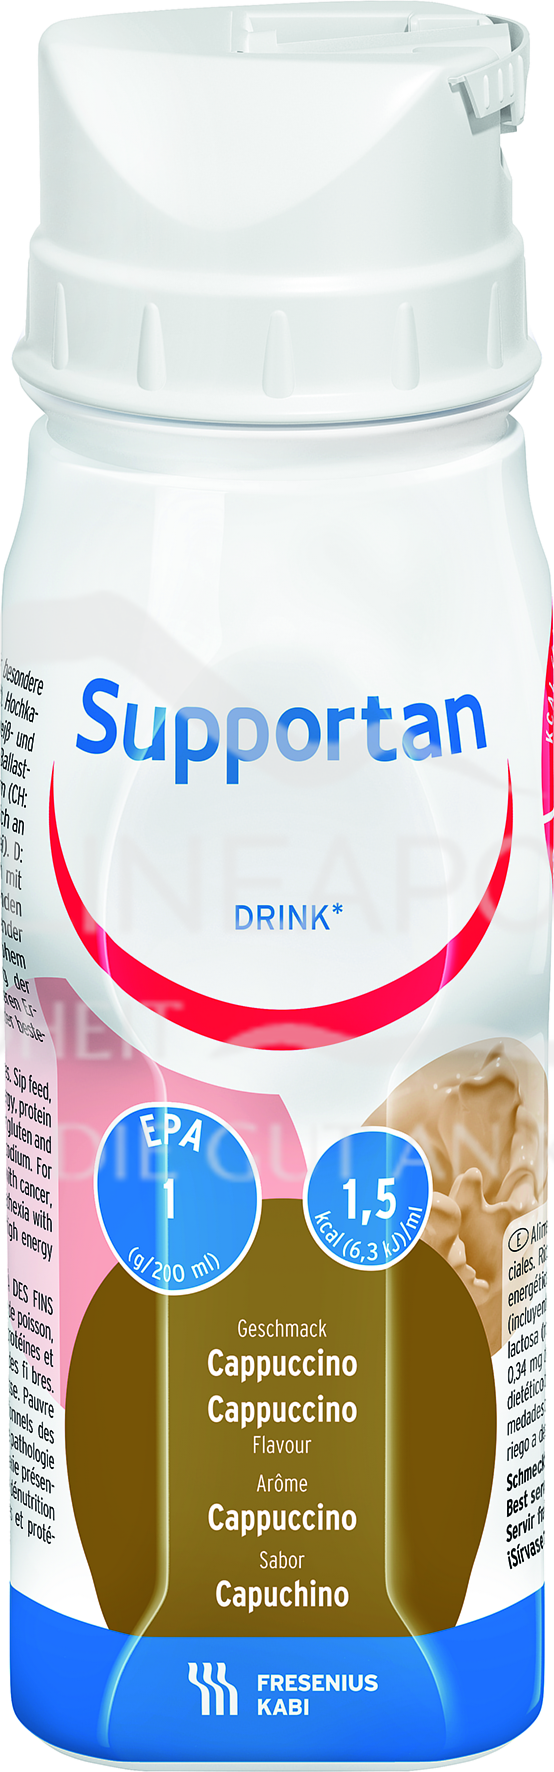 Supportan® DRINK Cappuccino